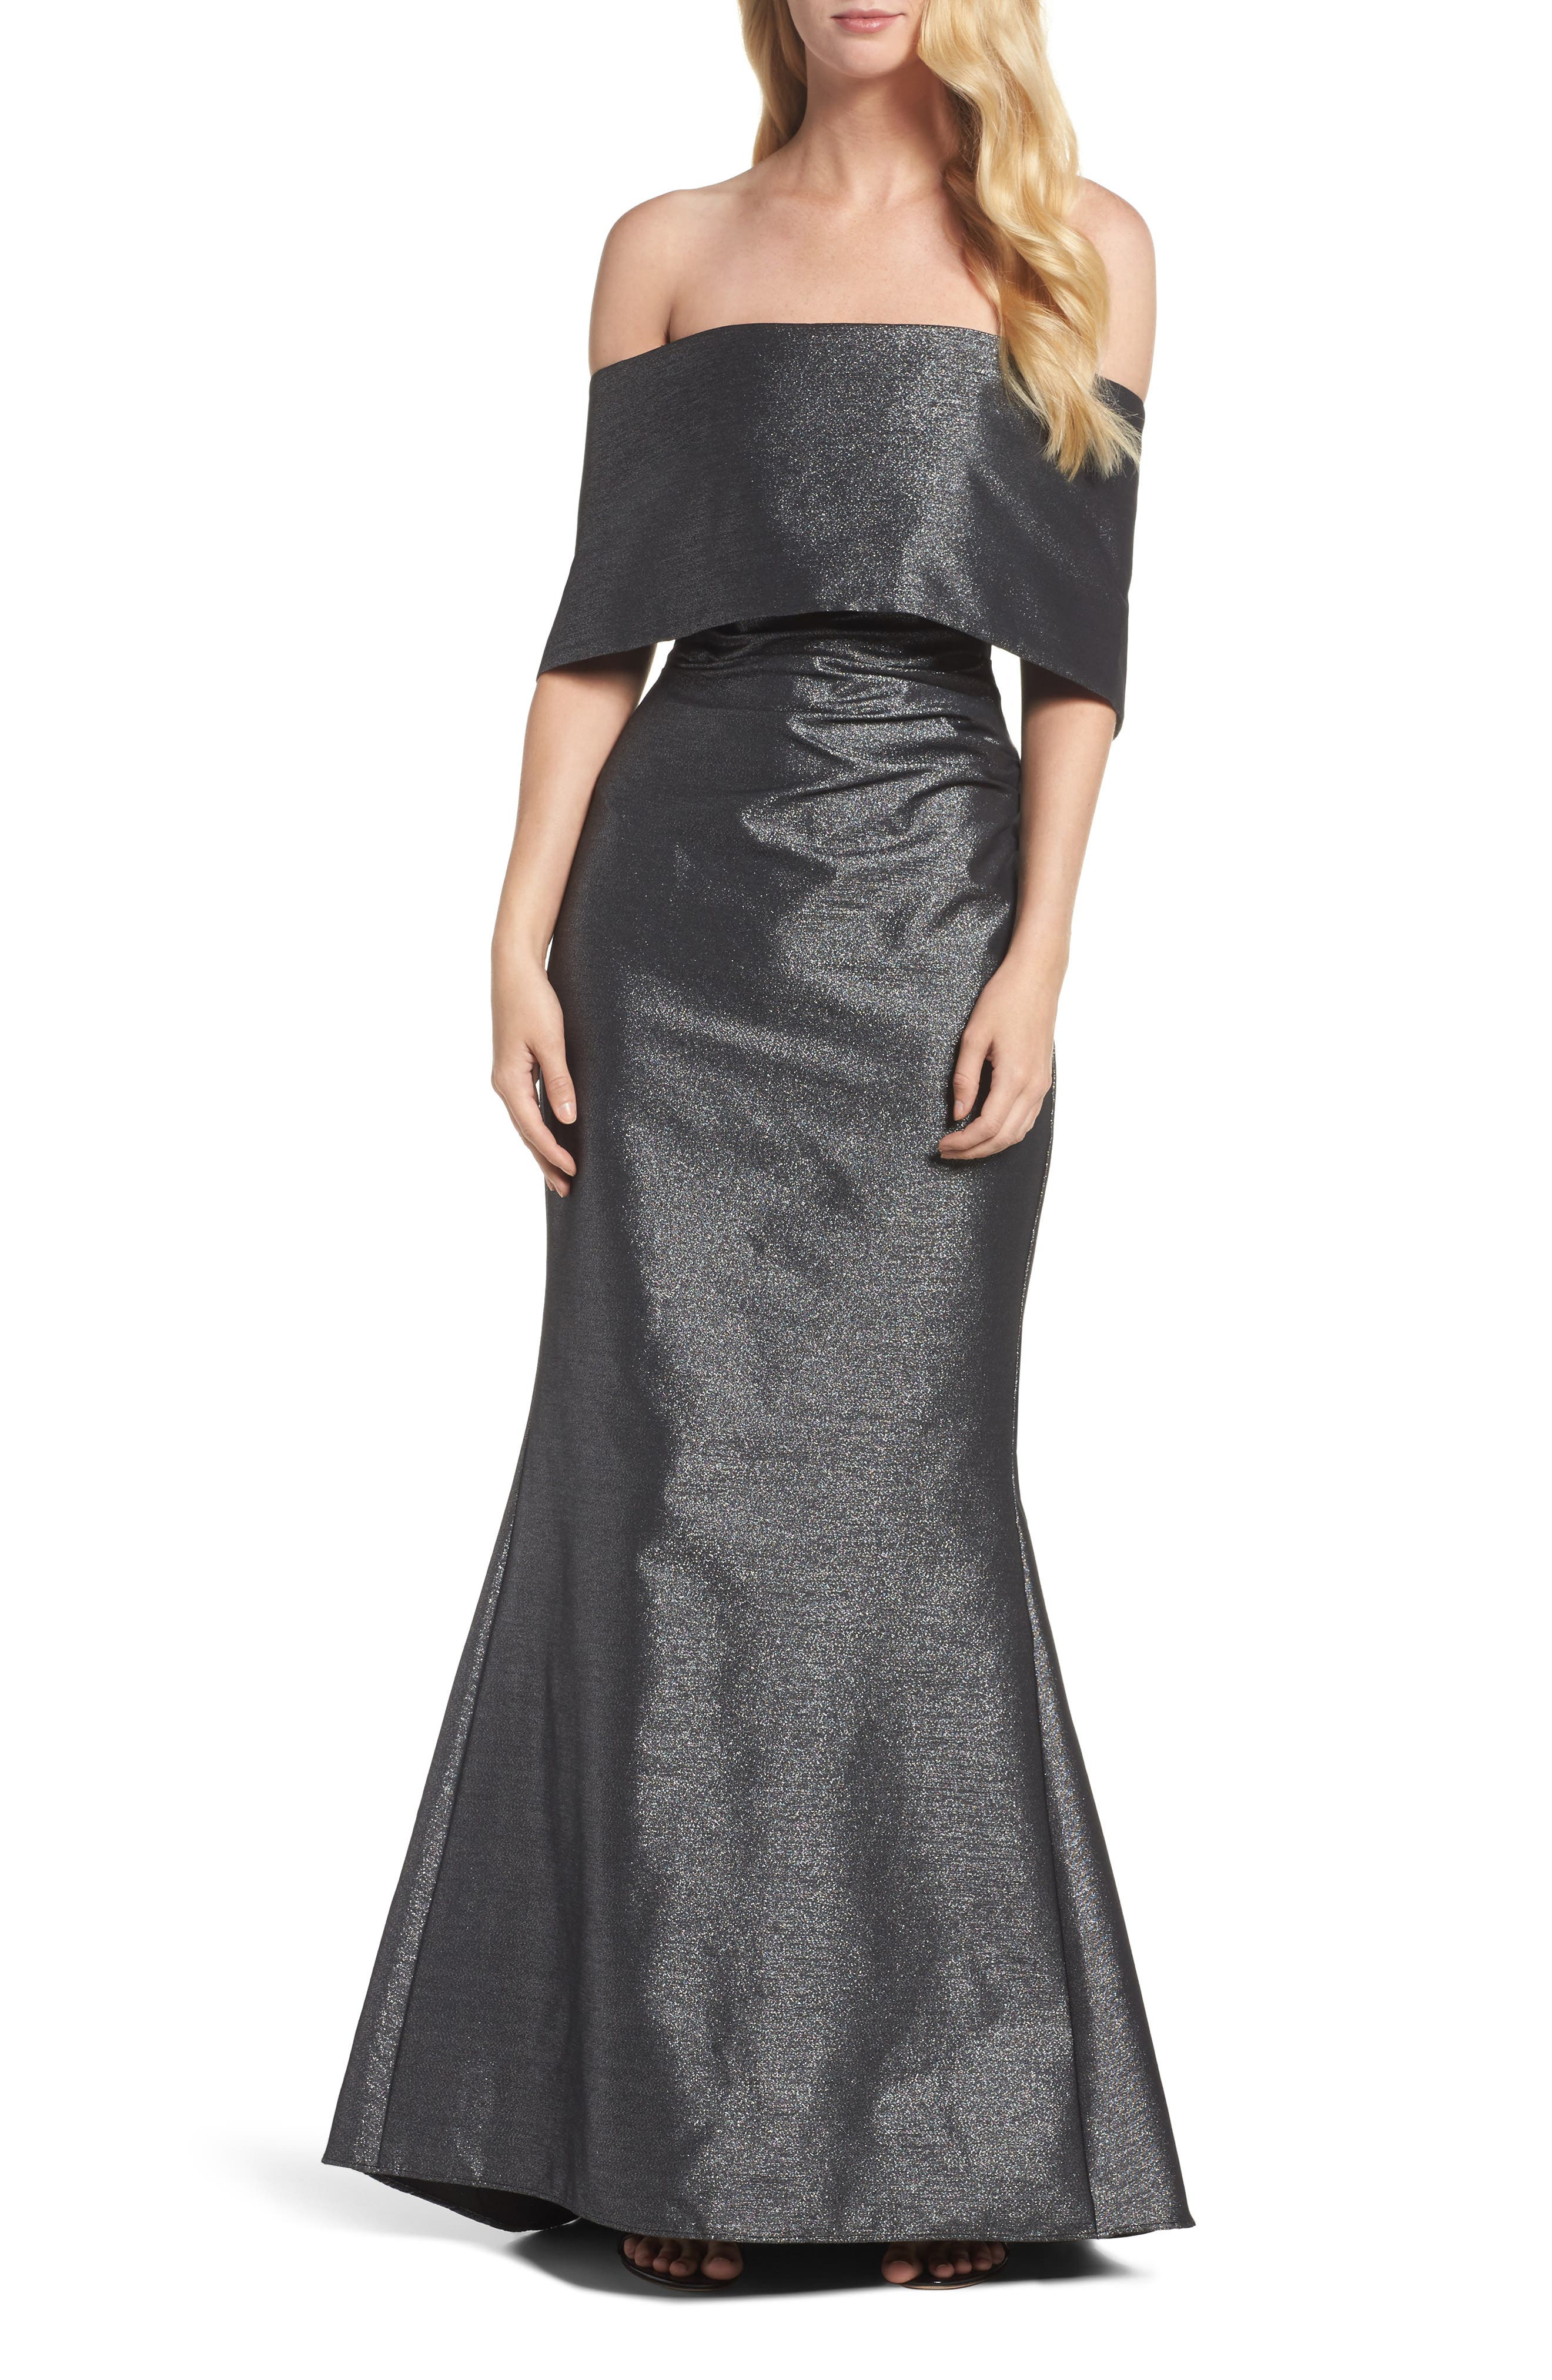 Alternate Image 1 Selected - Vince Camuto Ruched Metallic Knit Off the Shoulder Gown